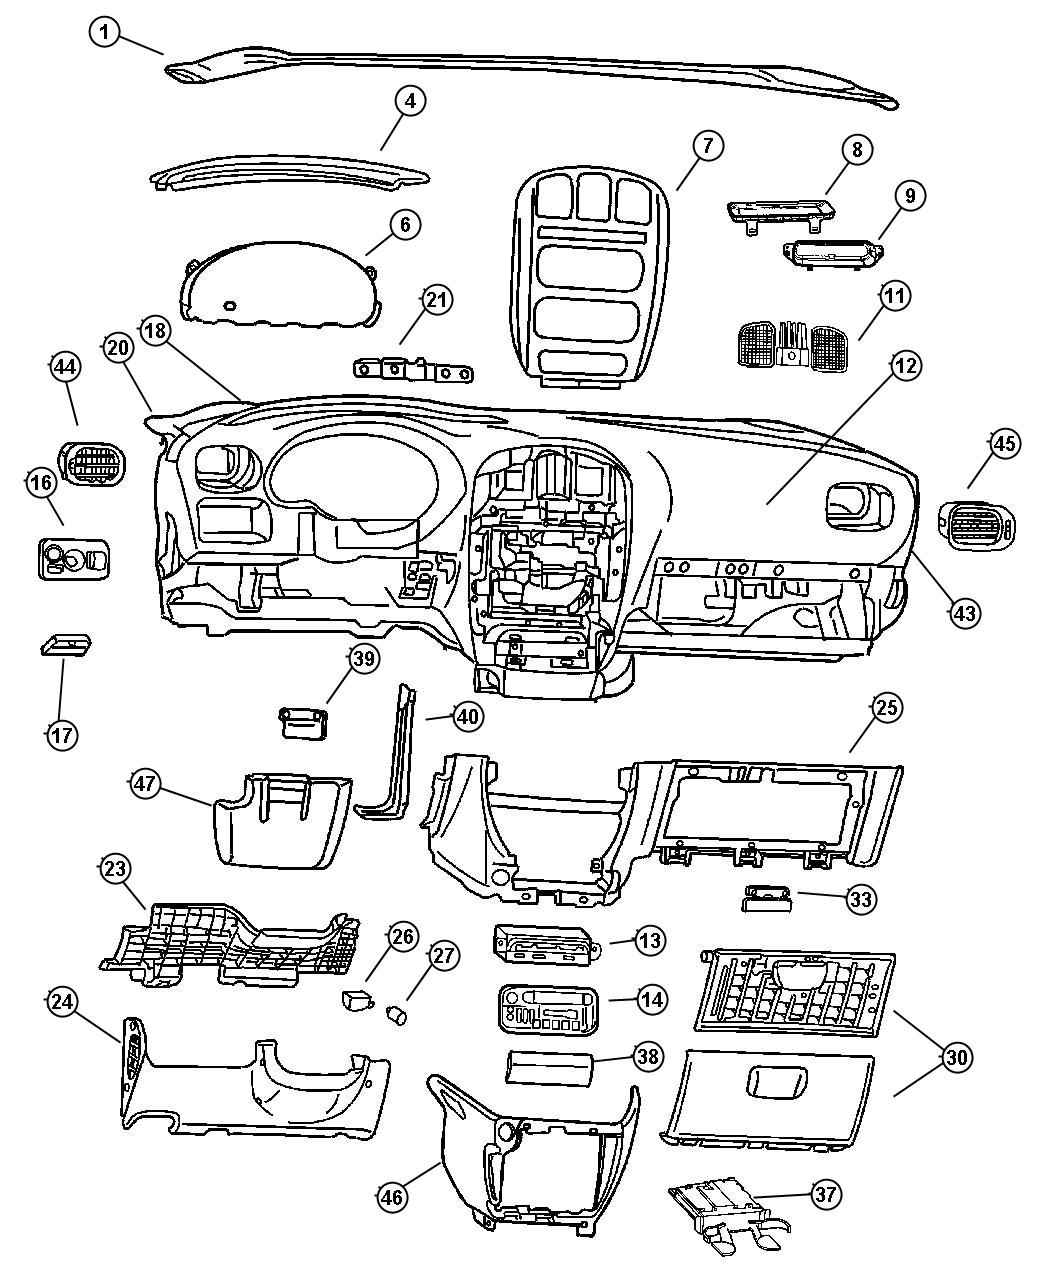 1999 Dodge Ram 1500 Dashboard Replacement on 2000 dodge intrepid parts diagram